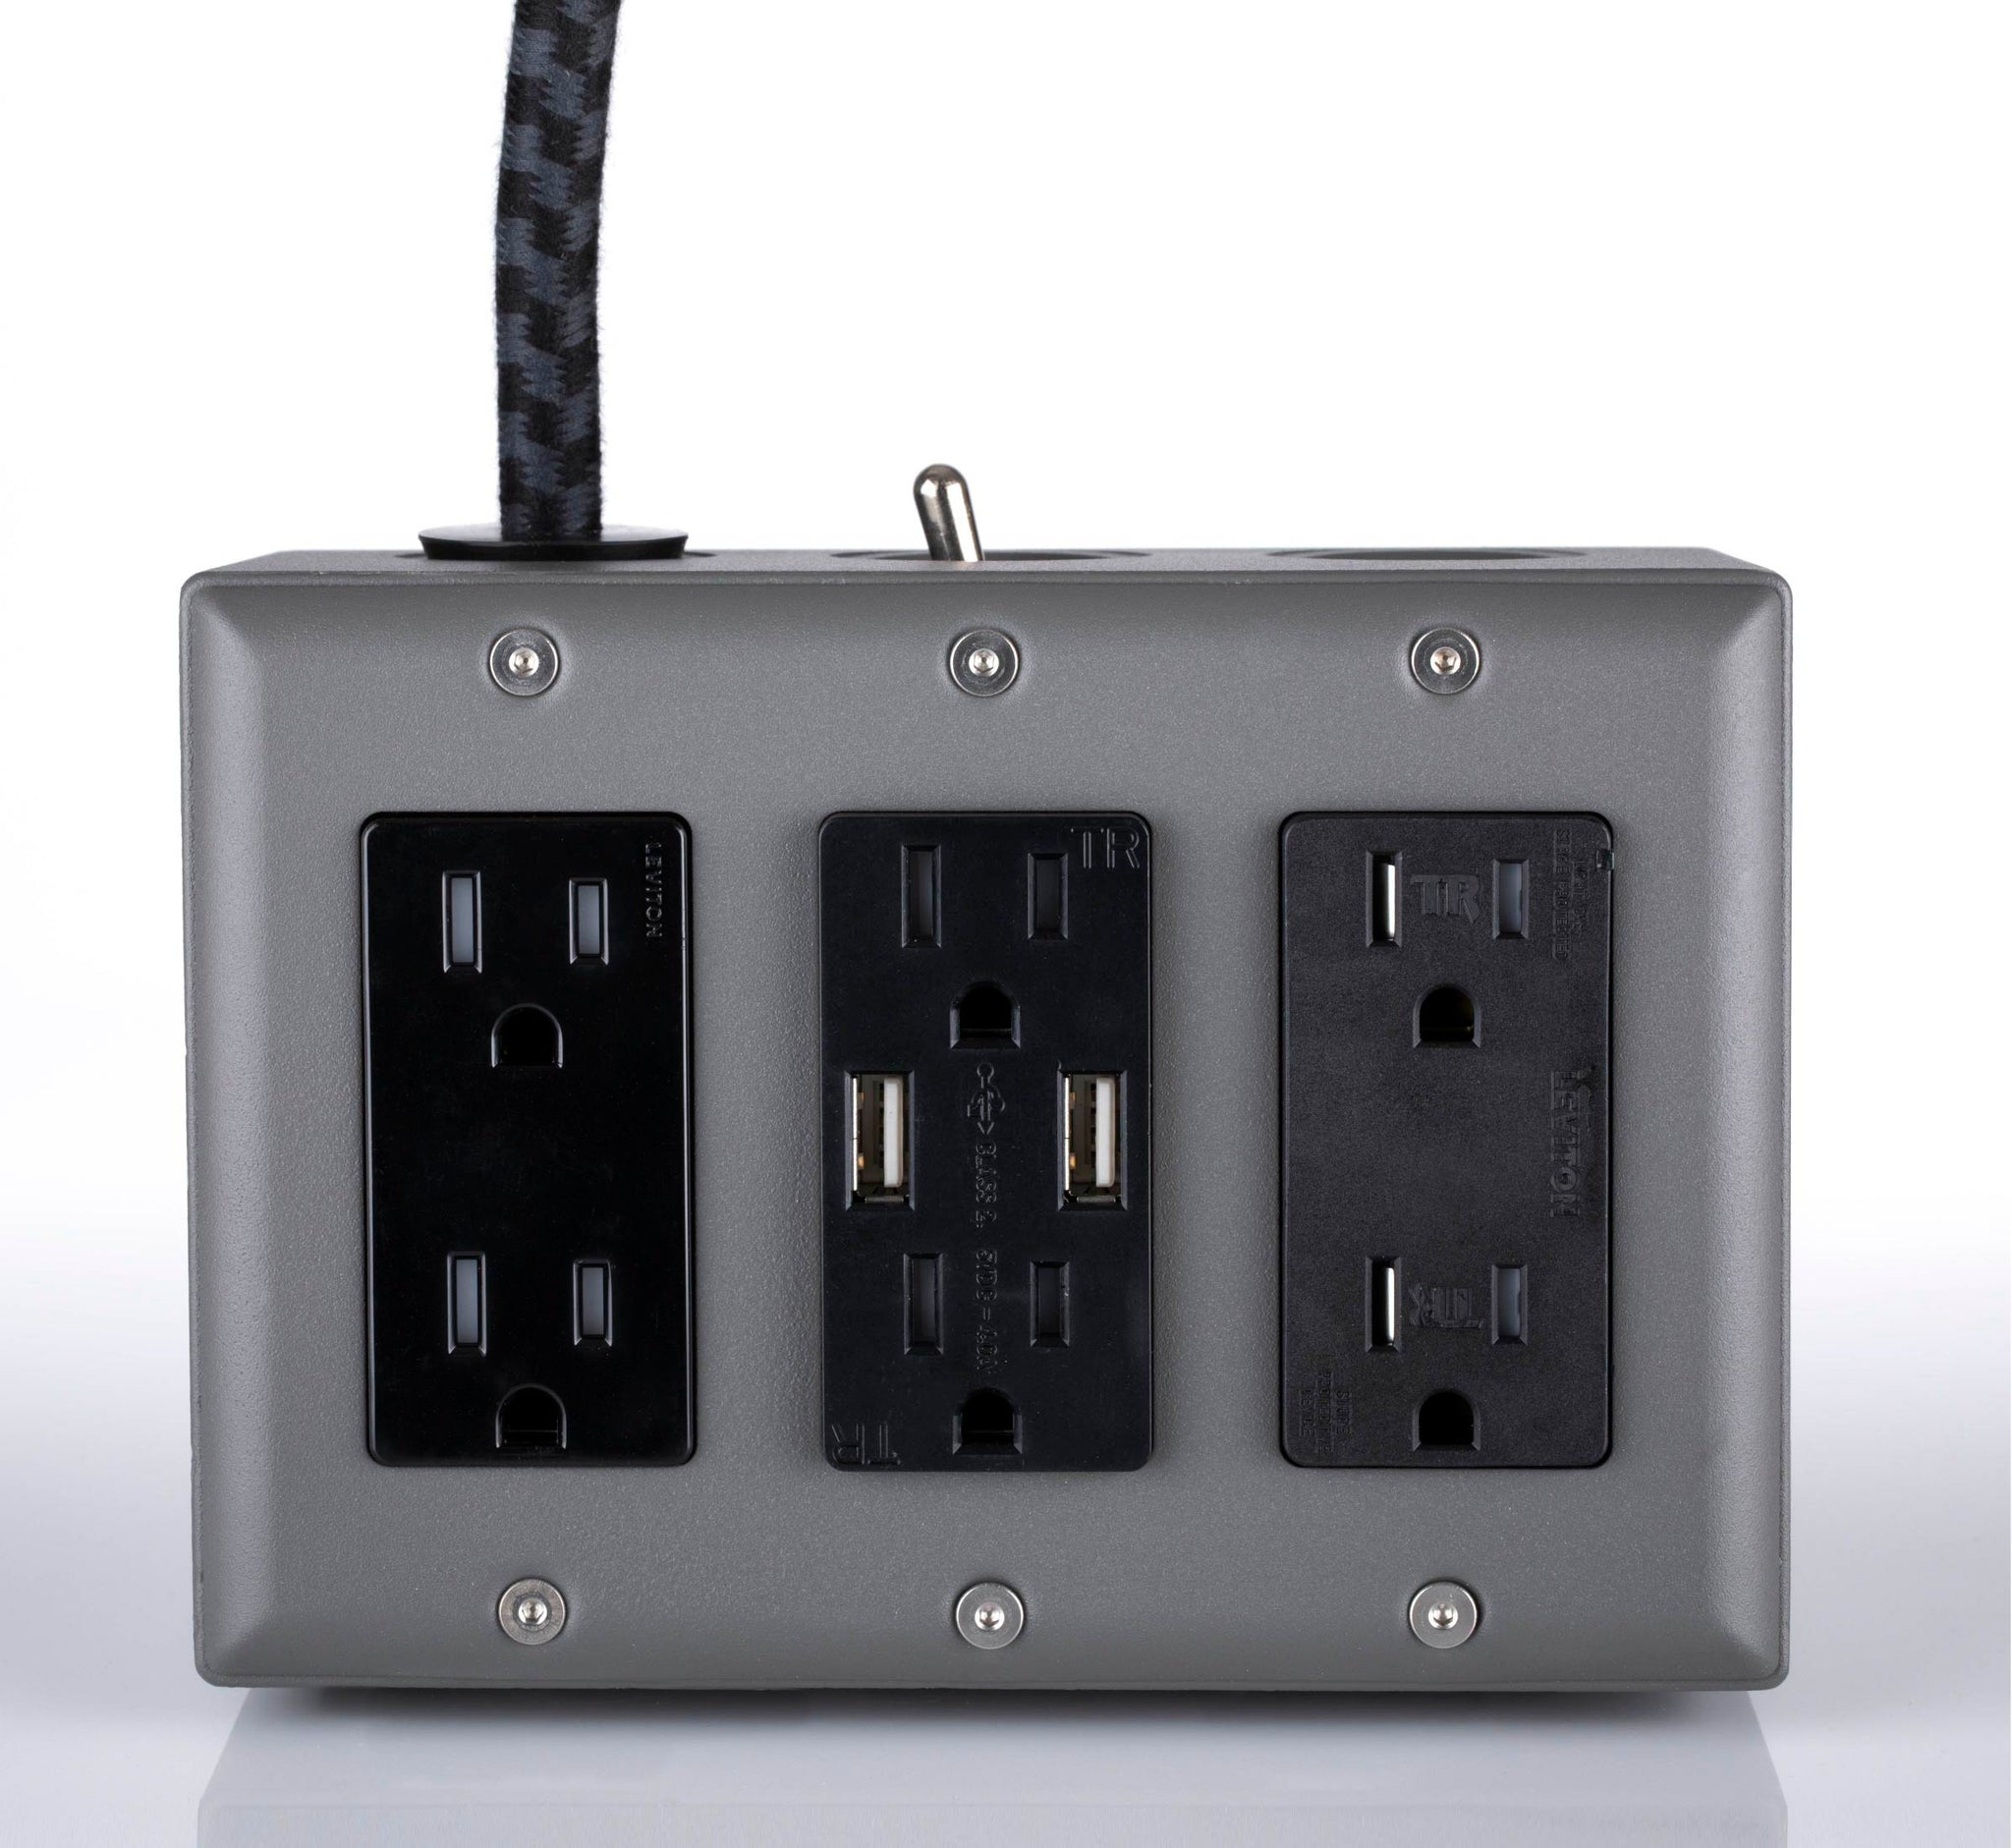 New! 6' Extō Surge 720 Smart Chip Surge-Protected Smart USB 6-Outlet Power Strip Humboldt Fog